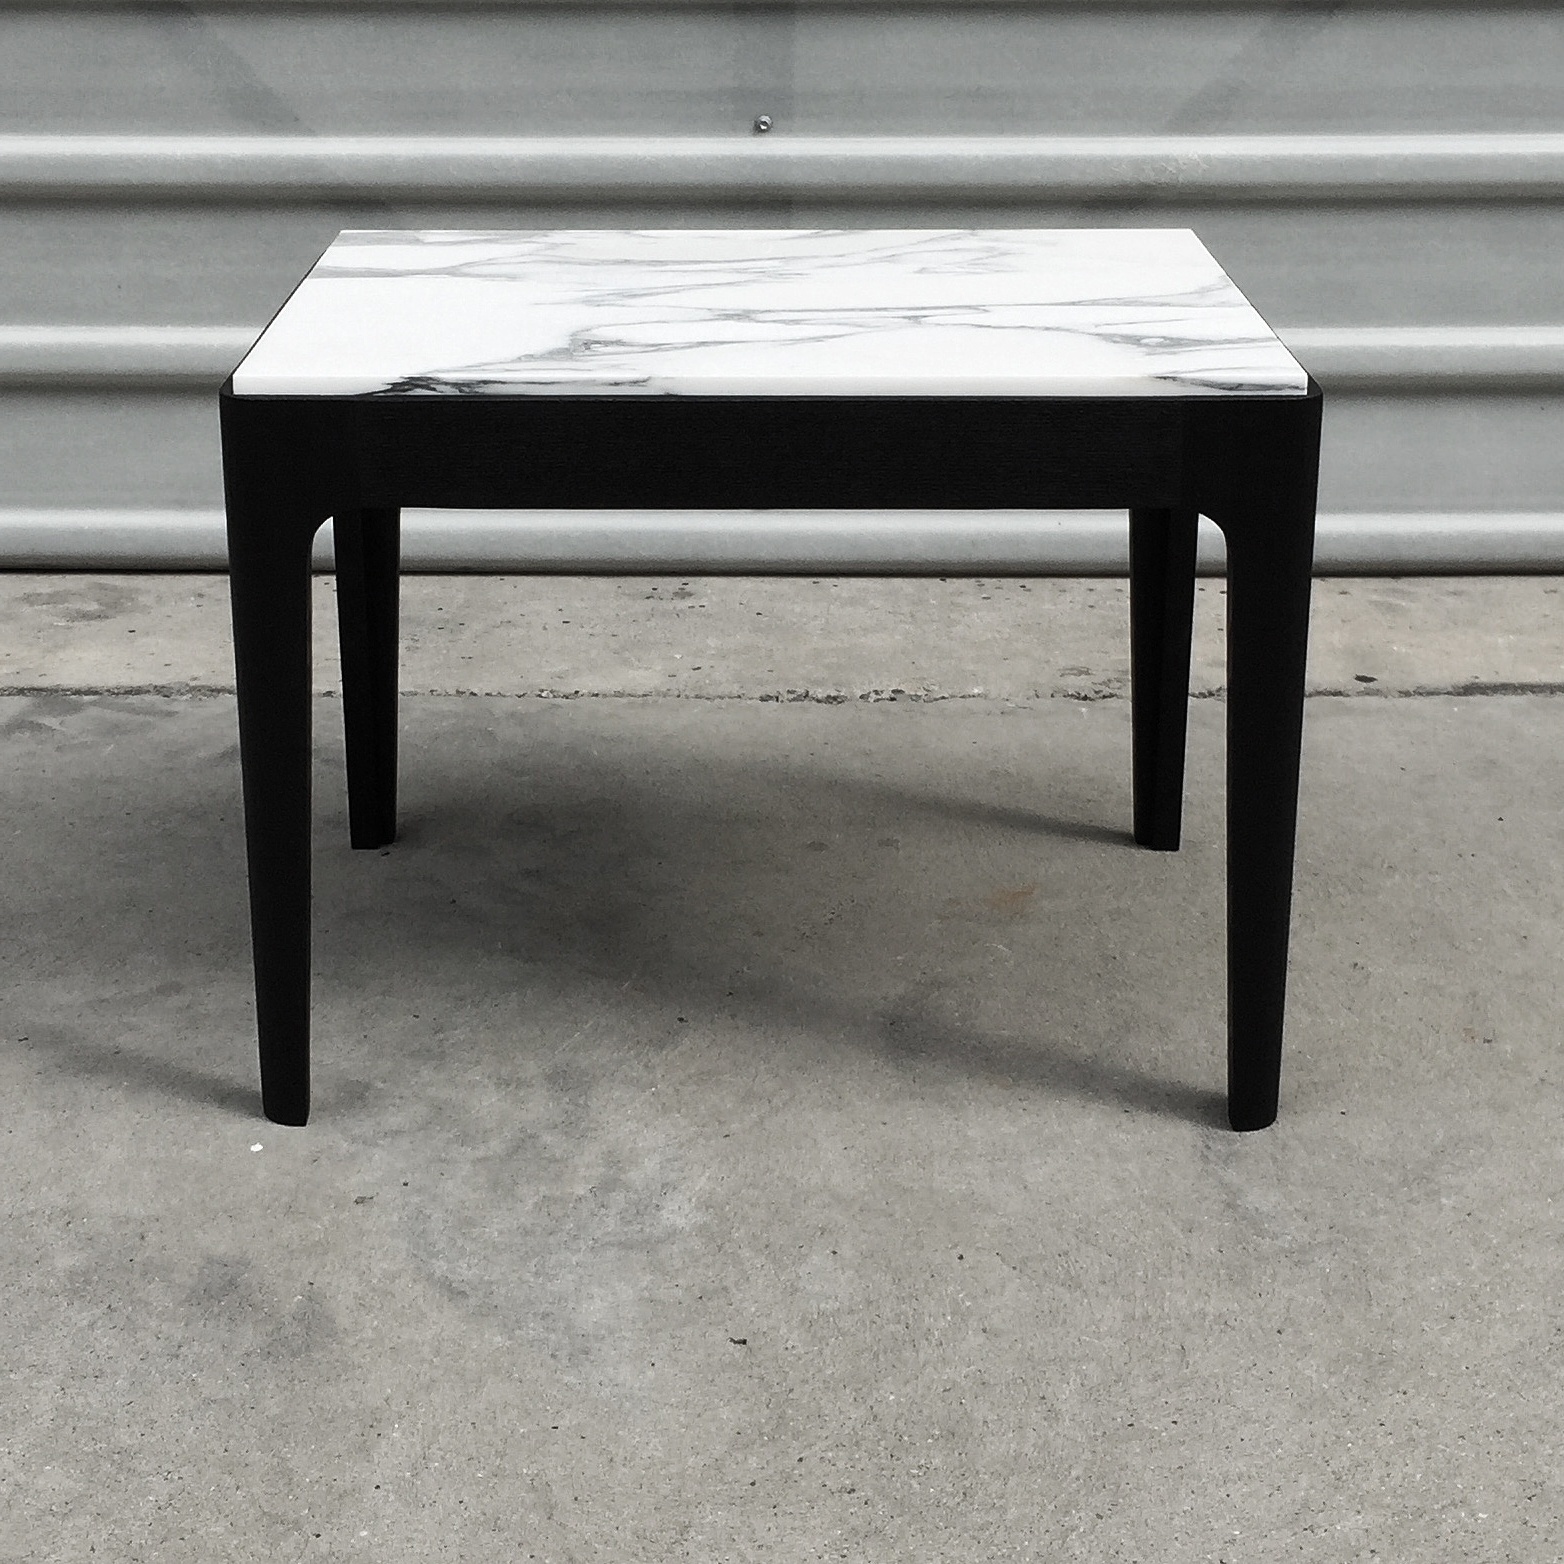 Preferred Intertwine Triangle Marble Coffee Tables Inside Black Marble Coffee Table Australia – Coffee Table Ideas (View 15 of 20)